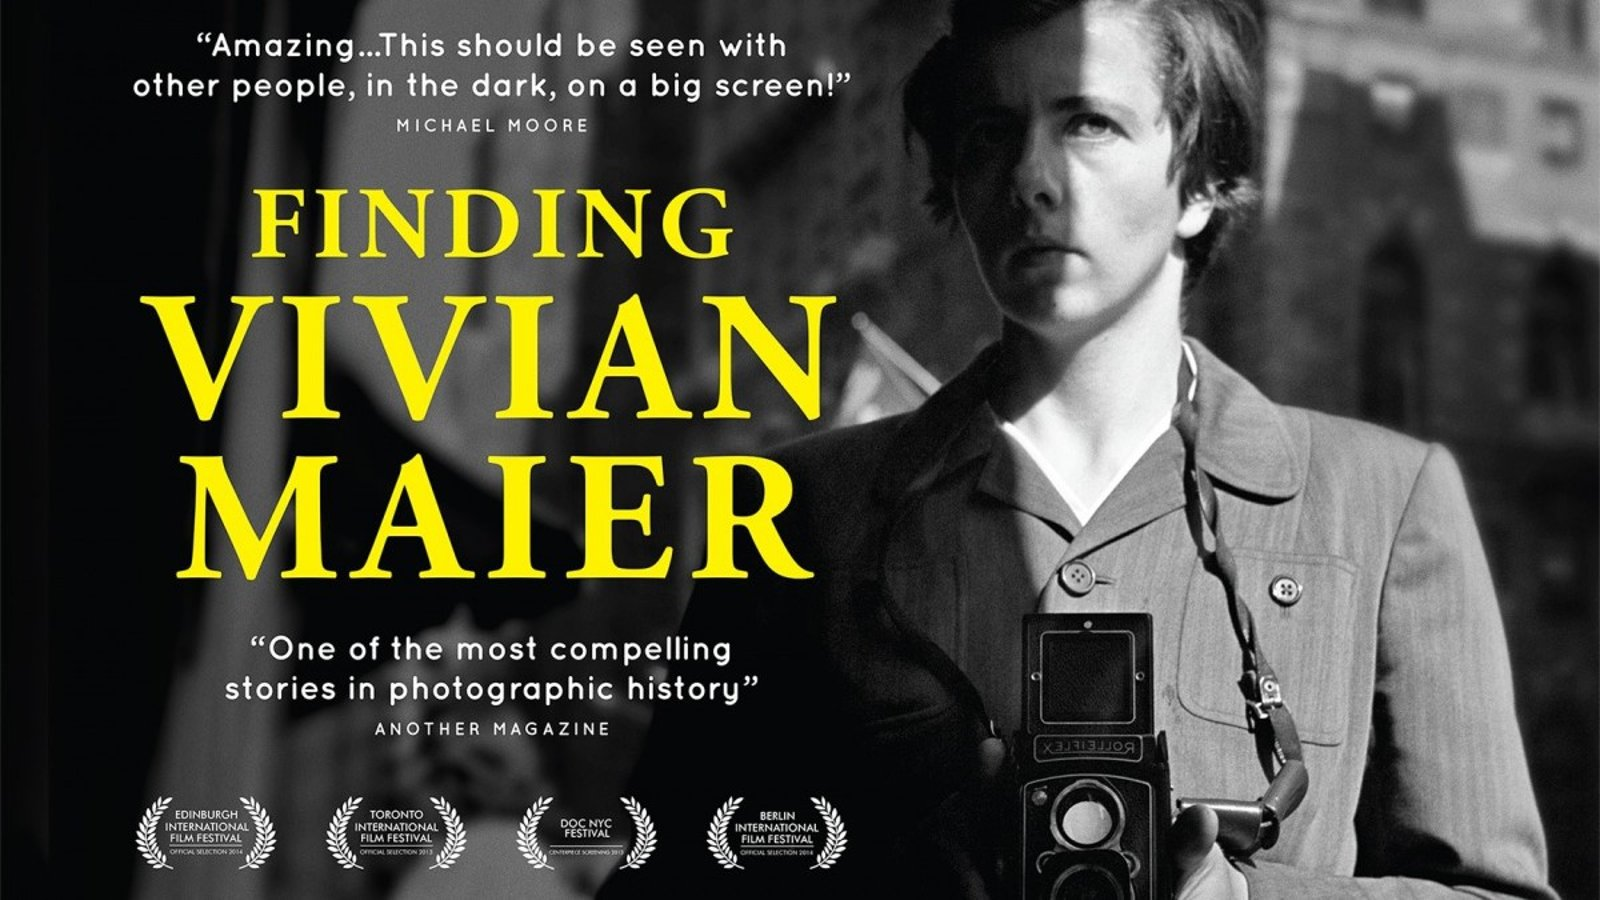 Finding Vivian Maier - The Life and Work of a Mysterious Photographer